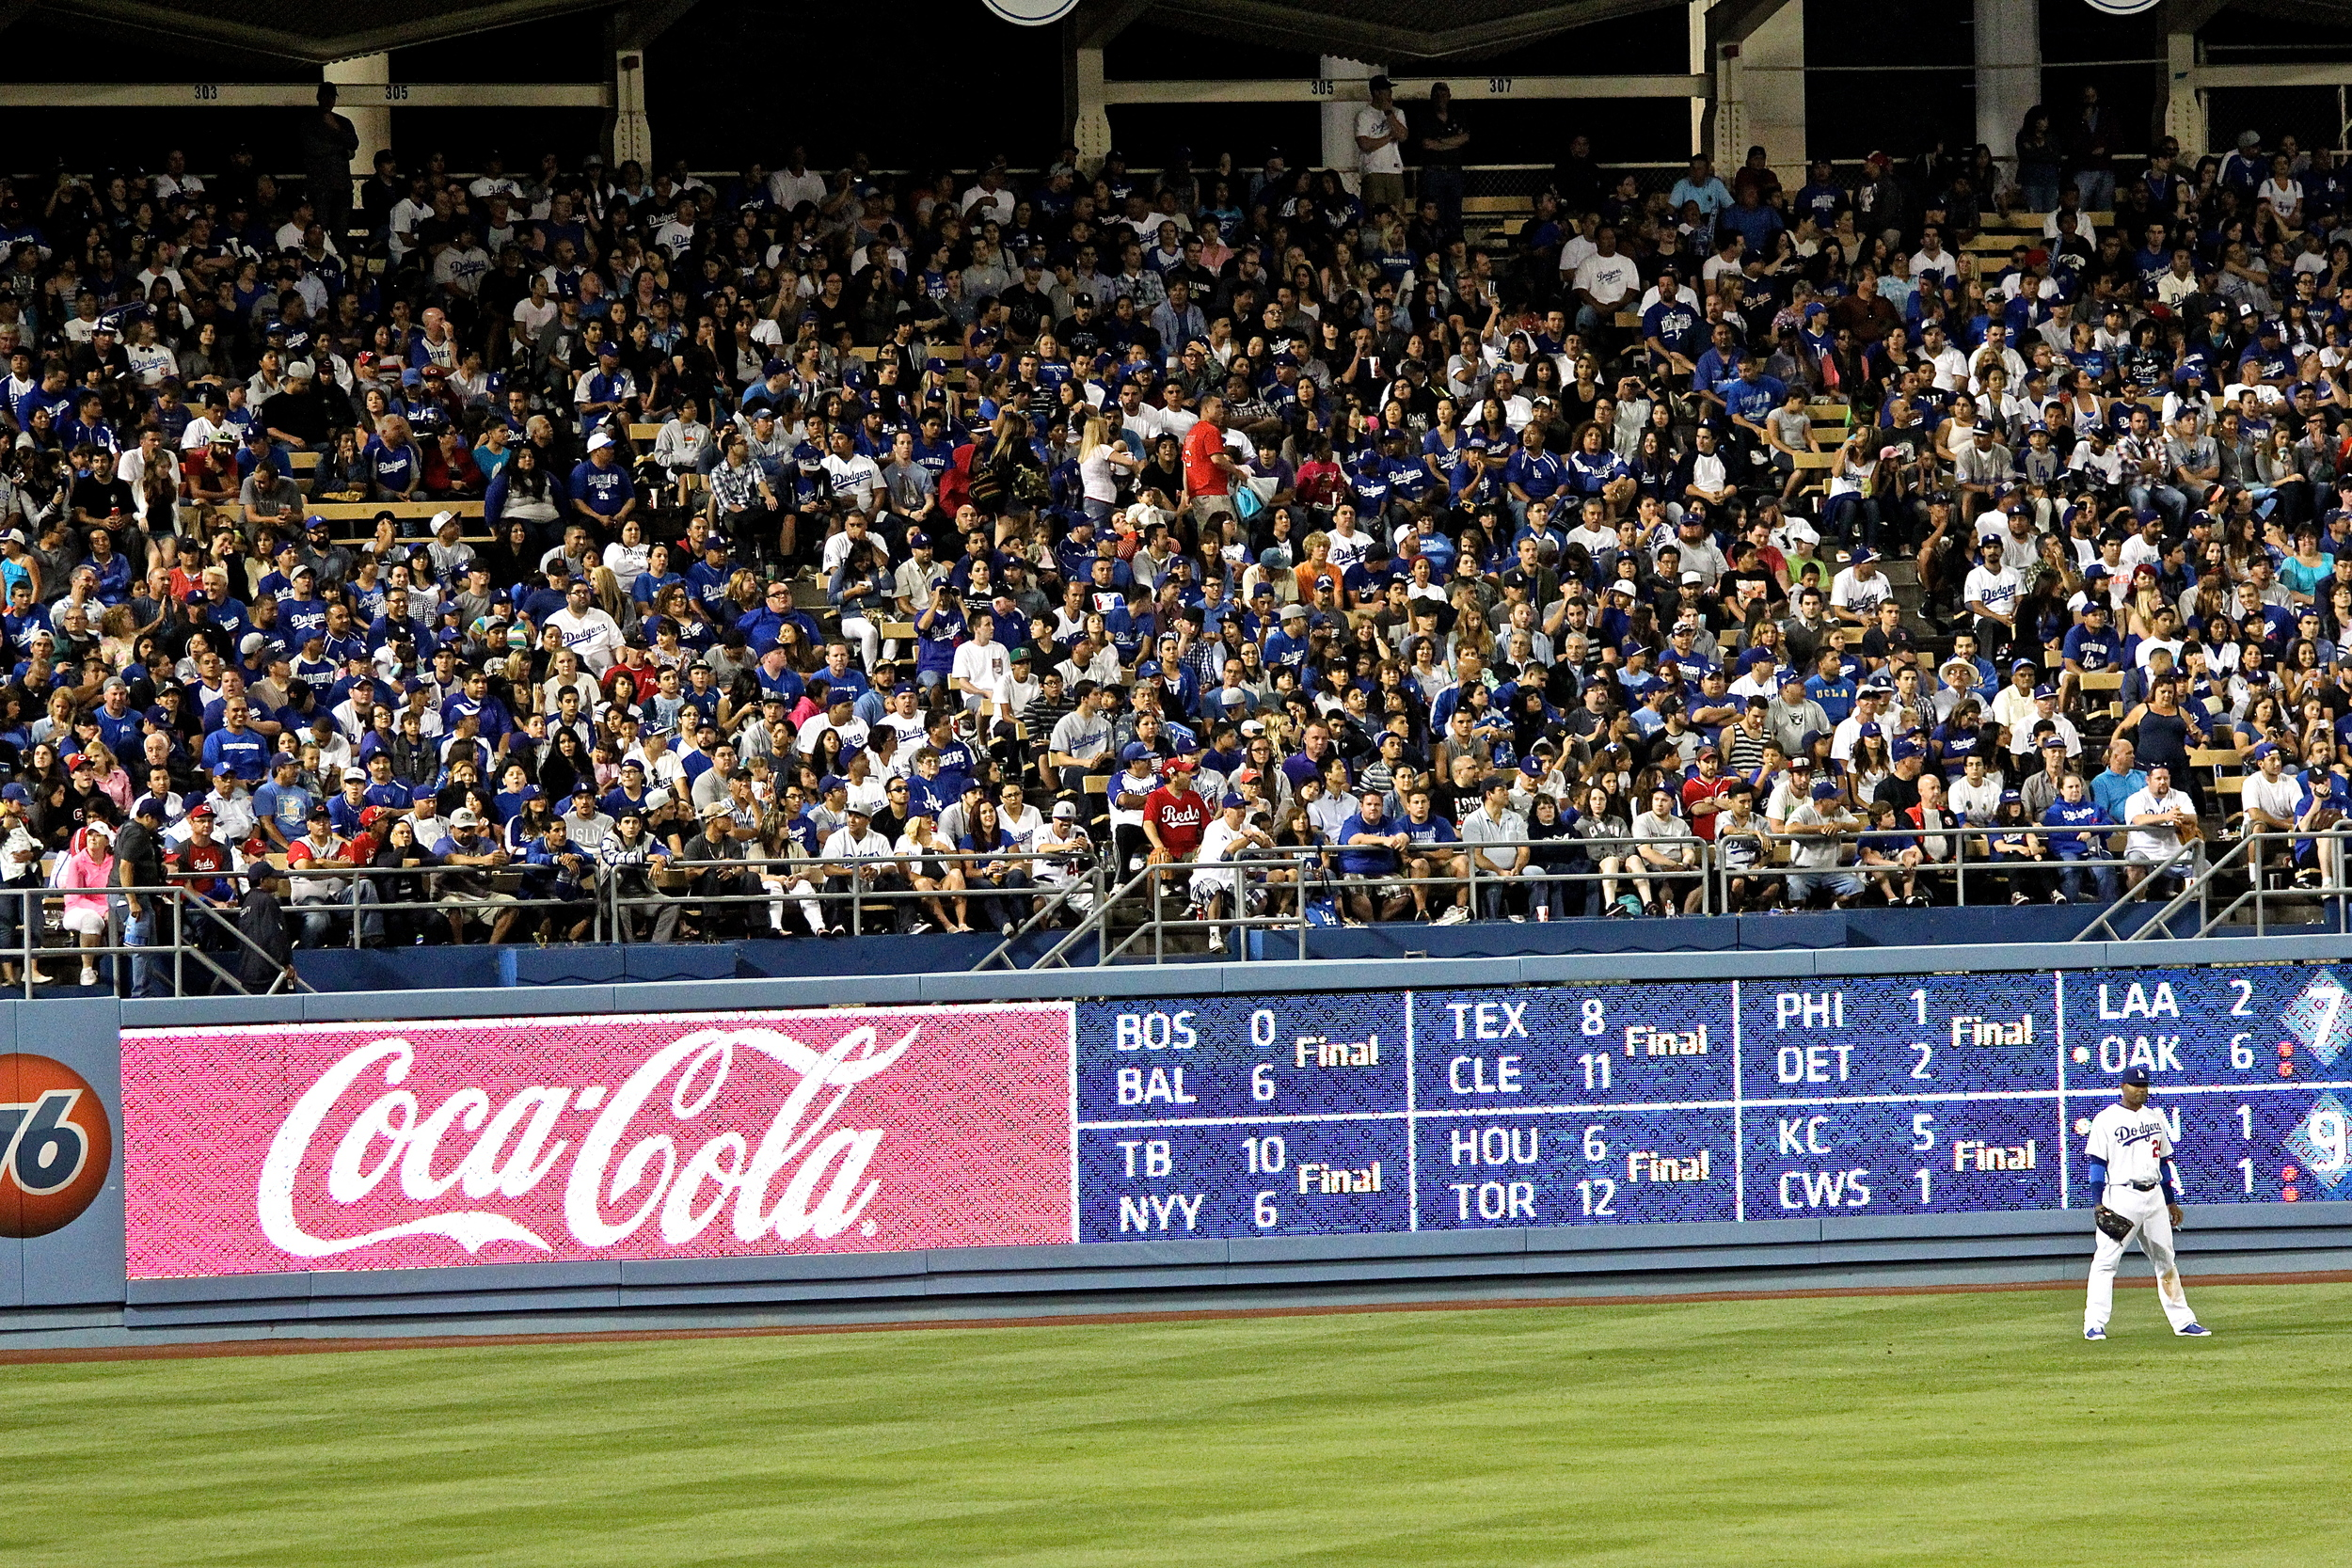 Carl Crawford alone in the outfield